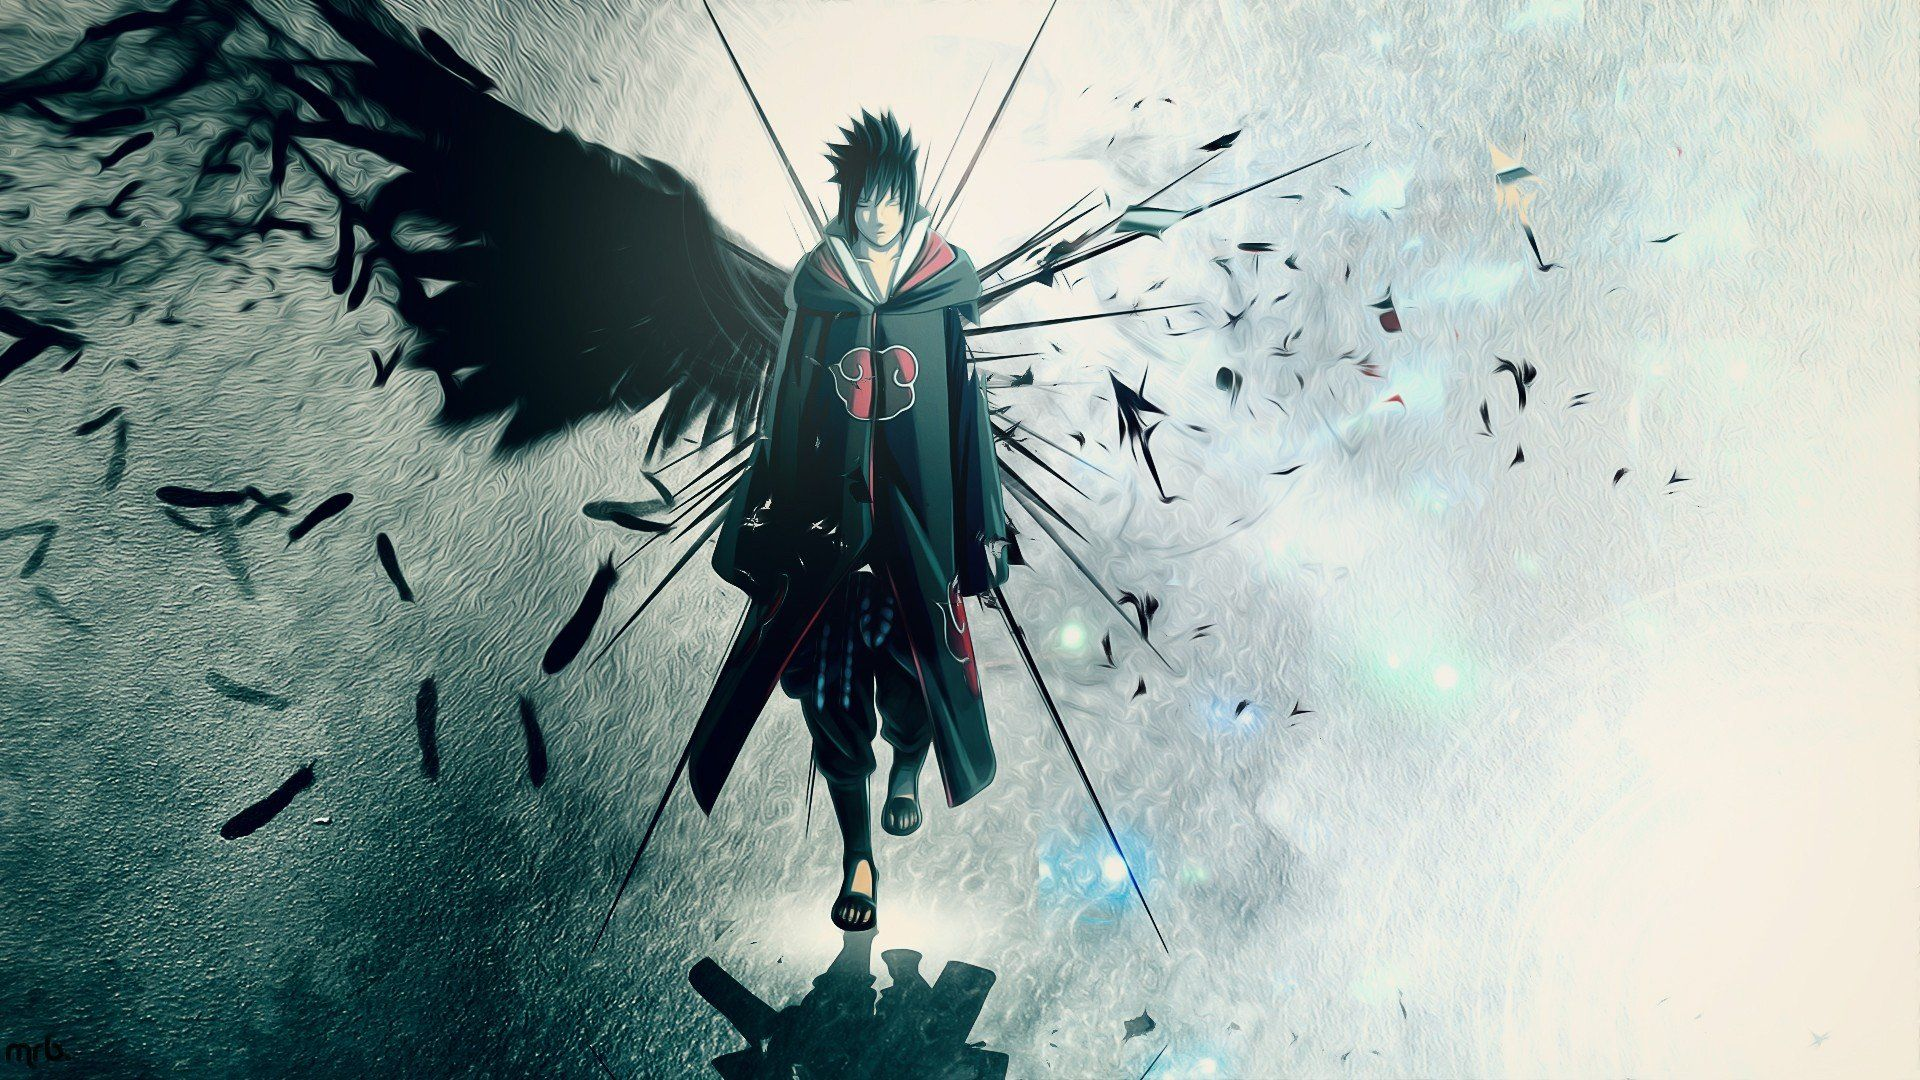 Epic Anime Wallpapers 1080p Sdeerwallpaper 123